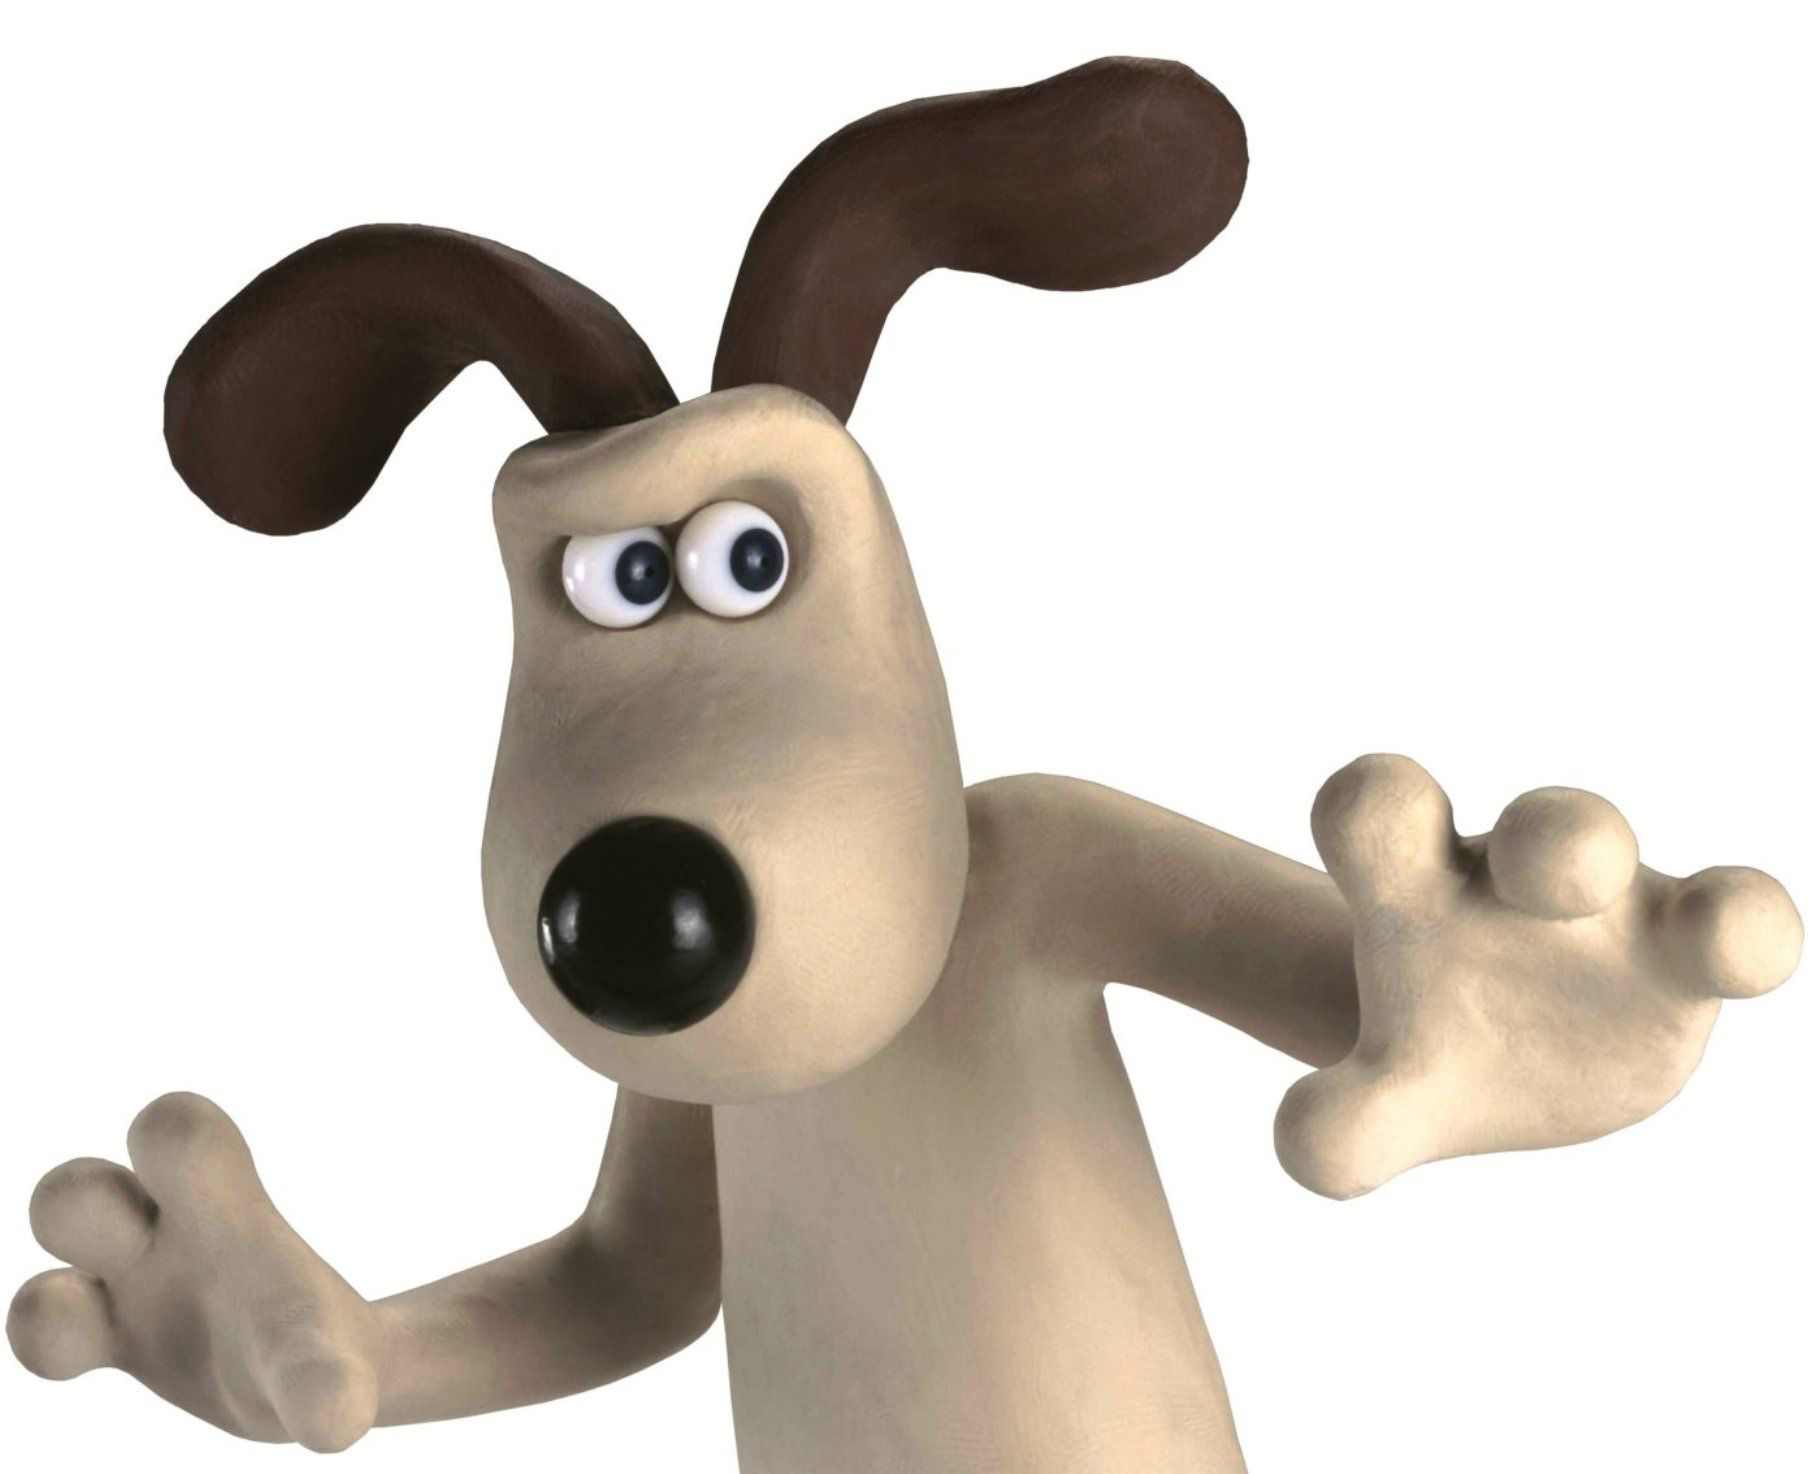 46 best Wallace and Gromit images on Pinterest  Penguins